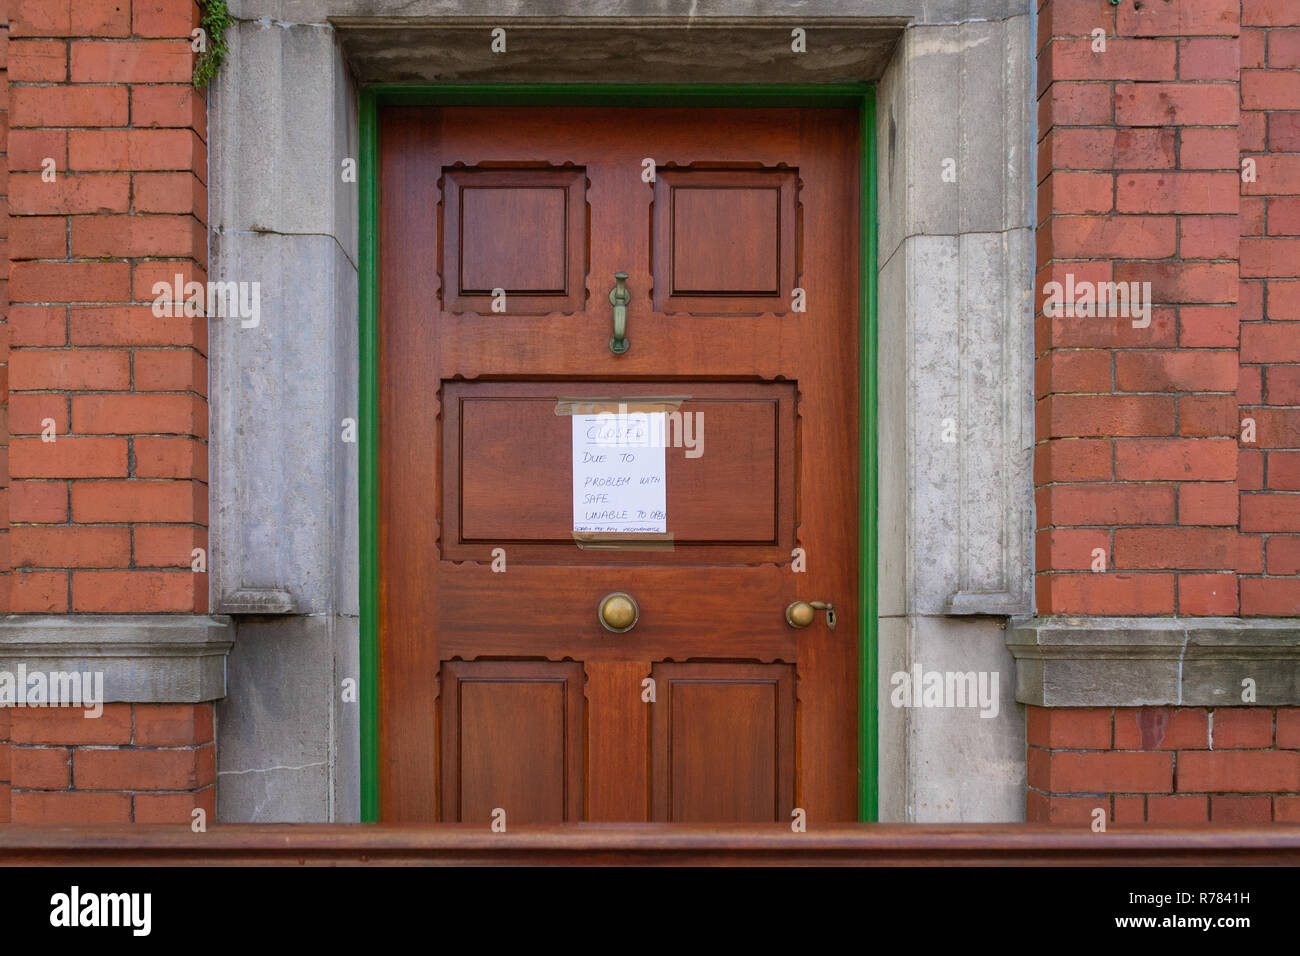 bank-door-with-blue-on-white-closed-sign-due-to-faulty-safe-R7841H.jpg